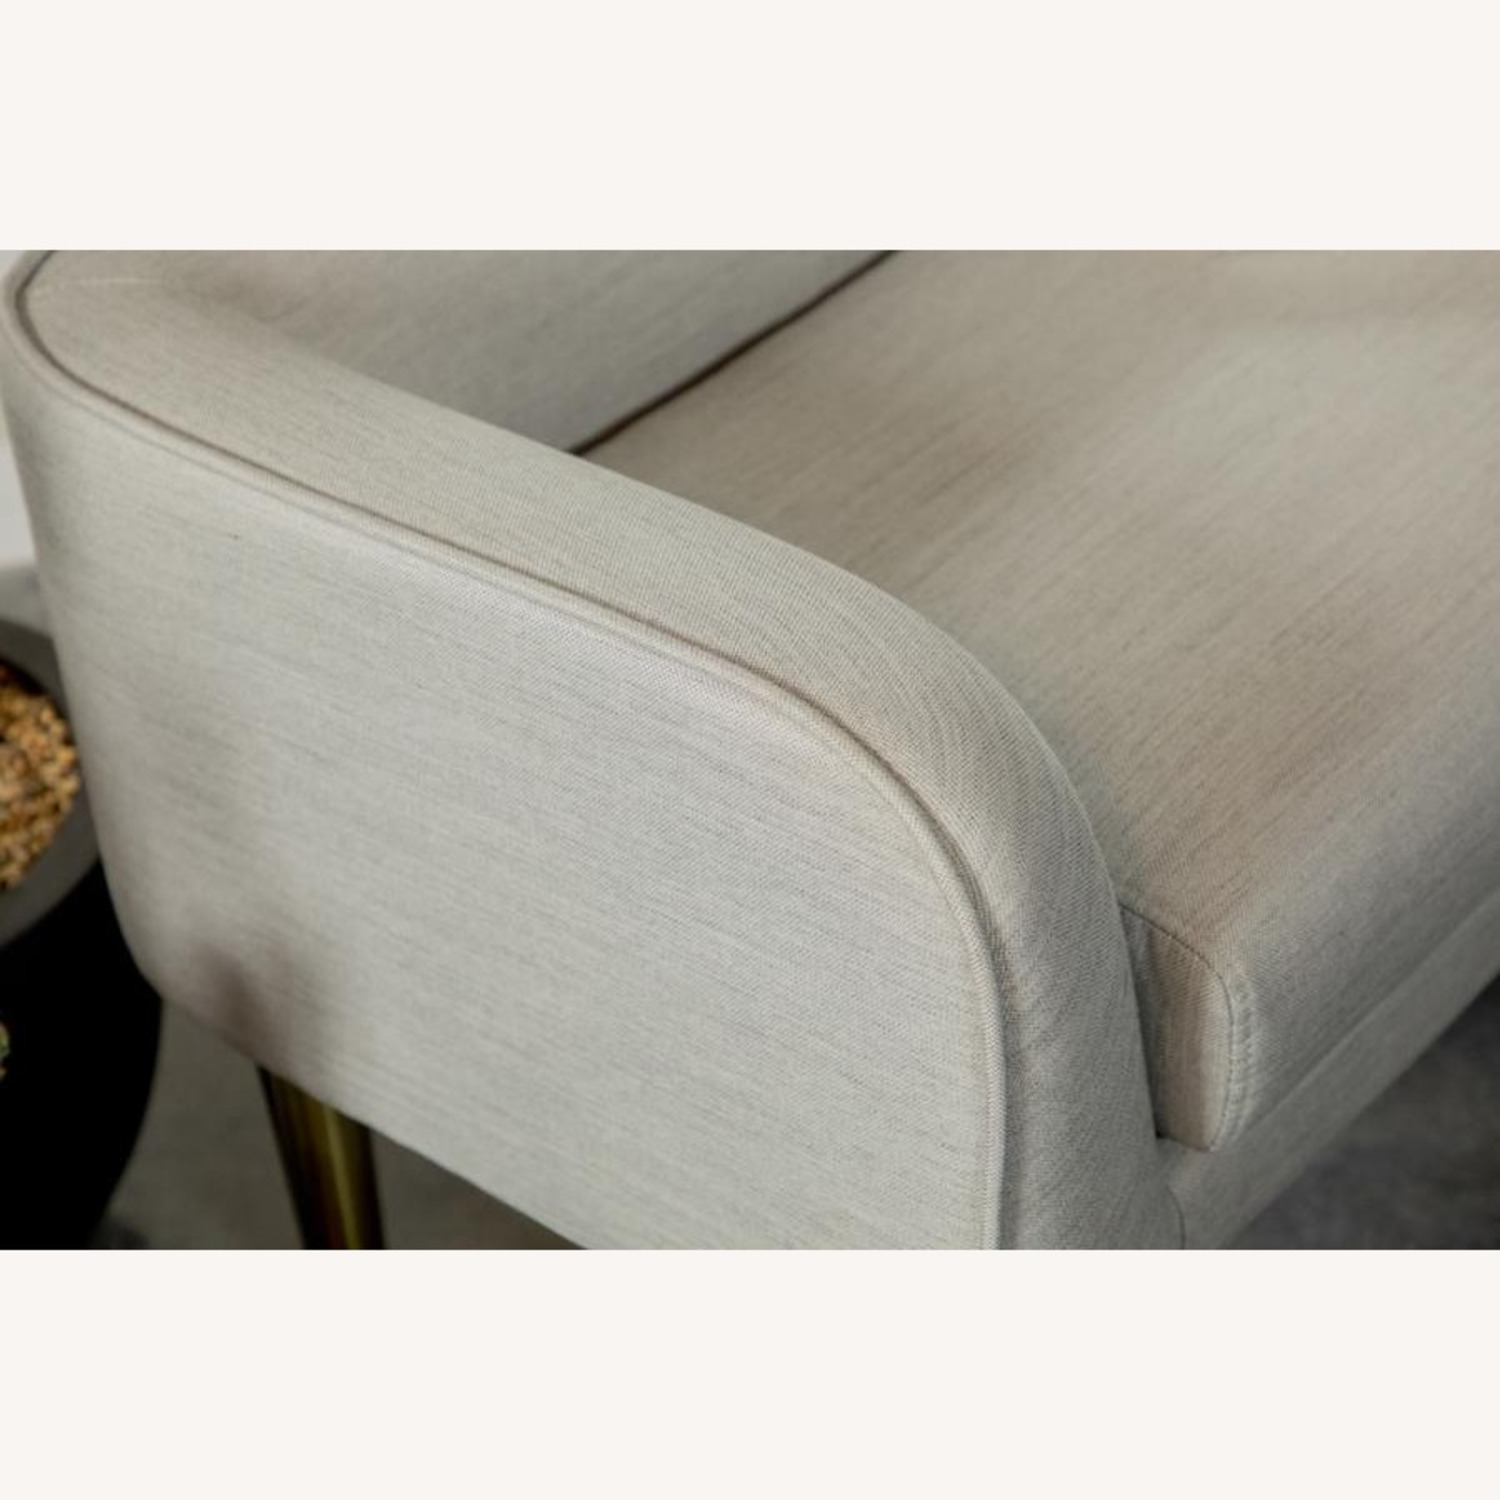 Bench In Light Grey Fabric W/ Tapered Legs - image-1